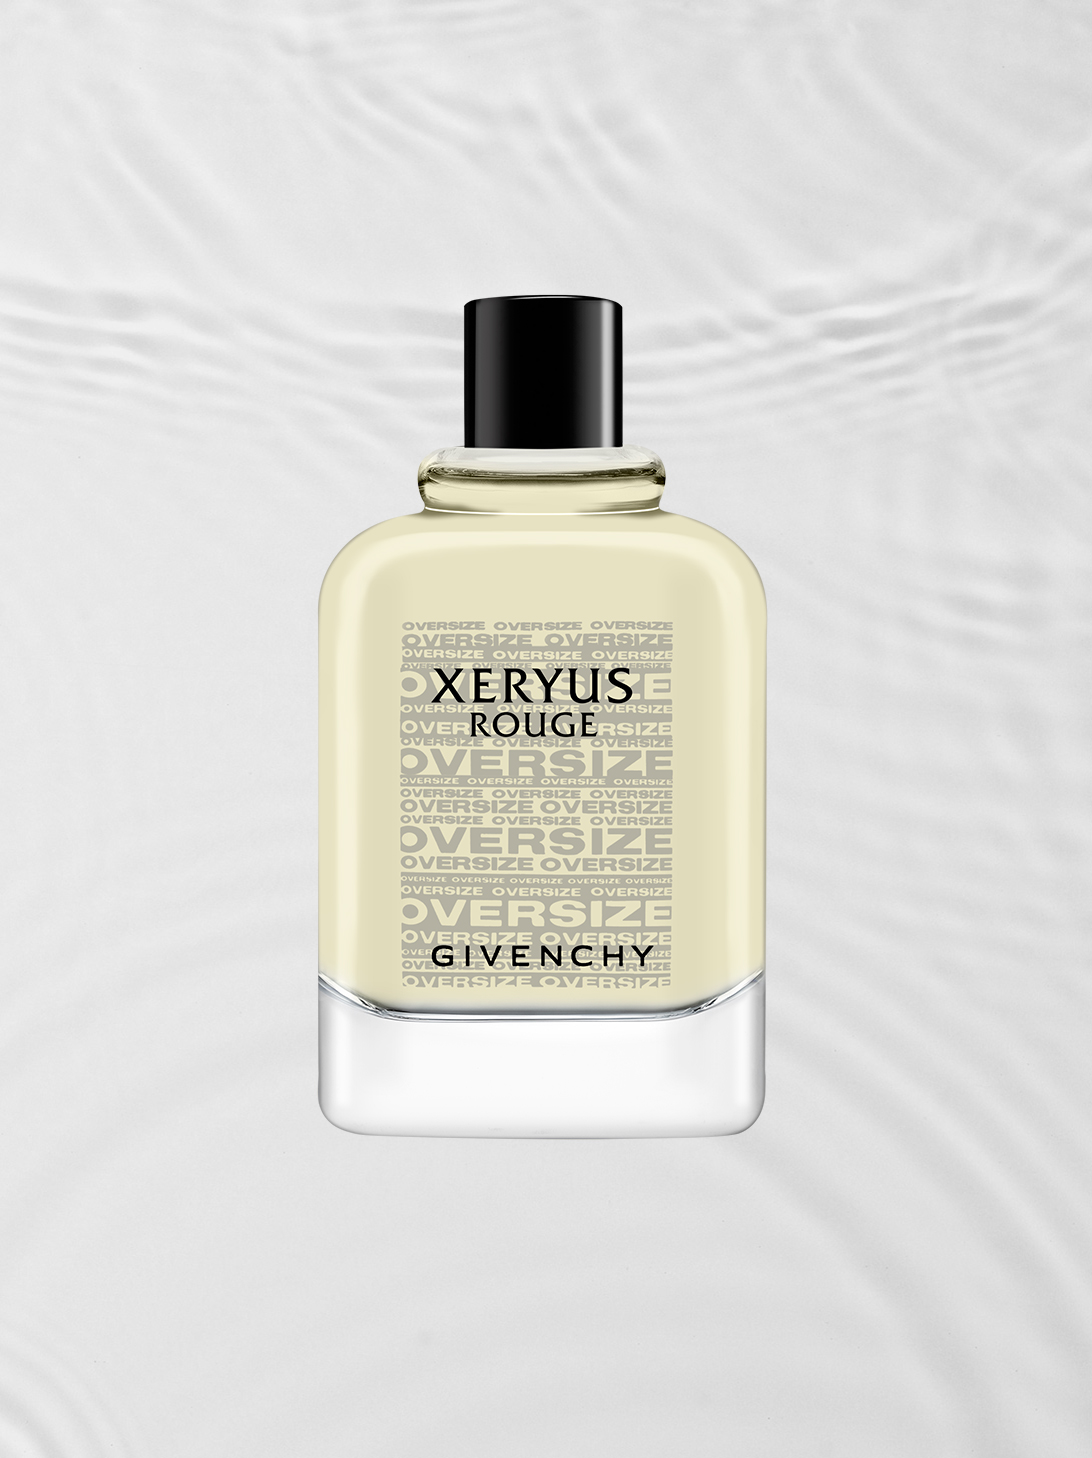 Xeryus Eau ∷ Givenchy Toilette Rouge • De f7gbY6yv